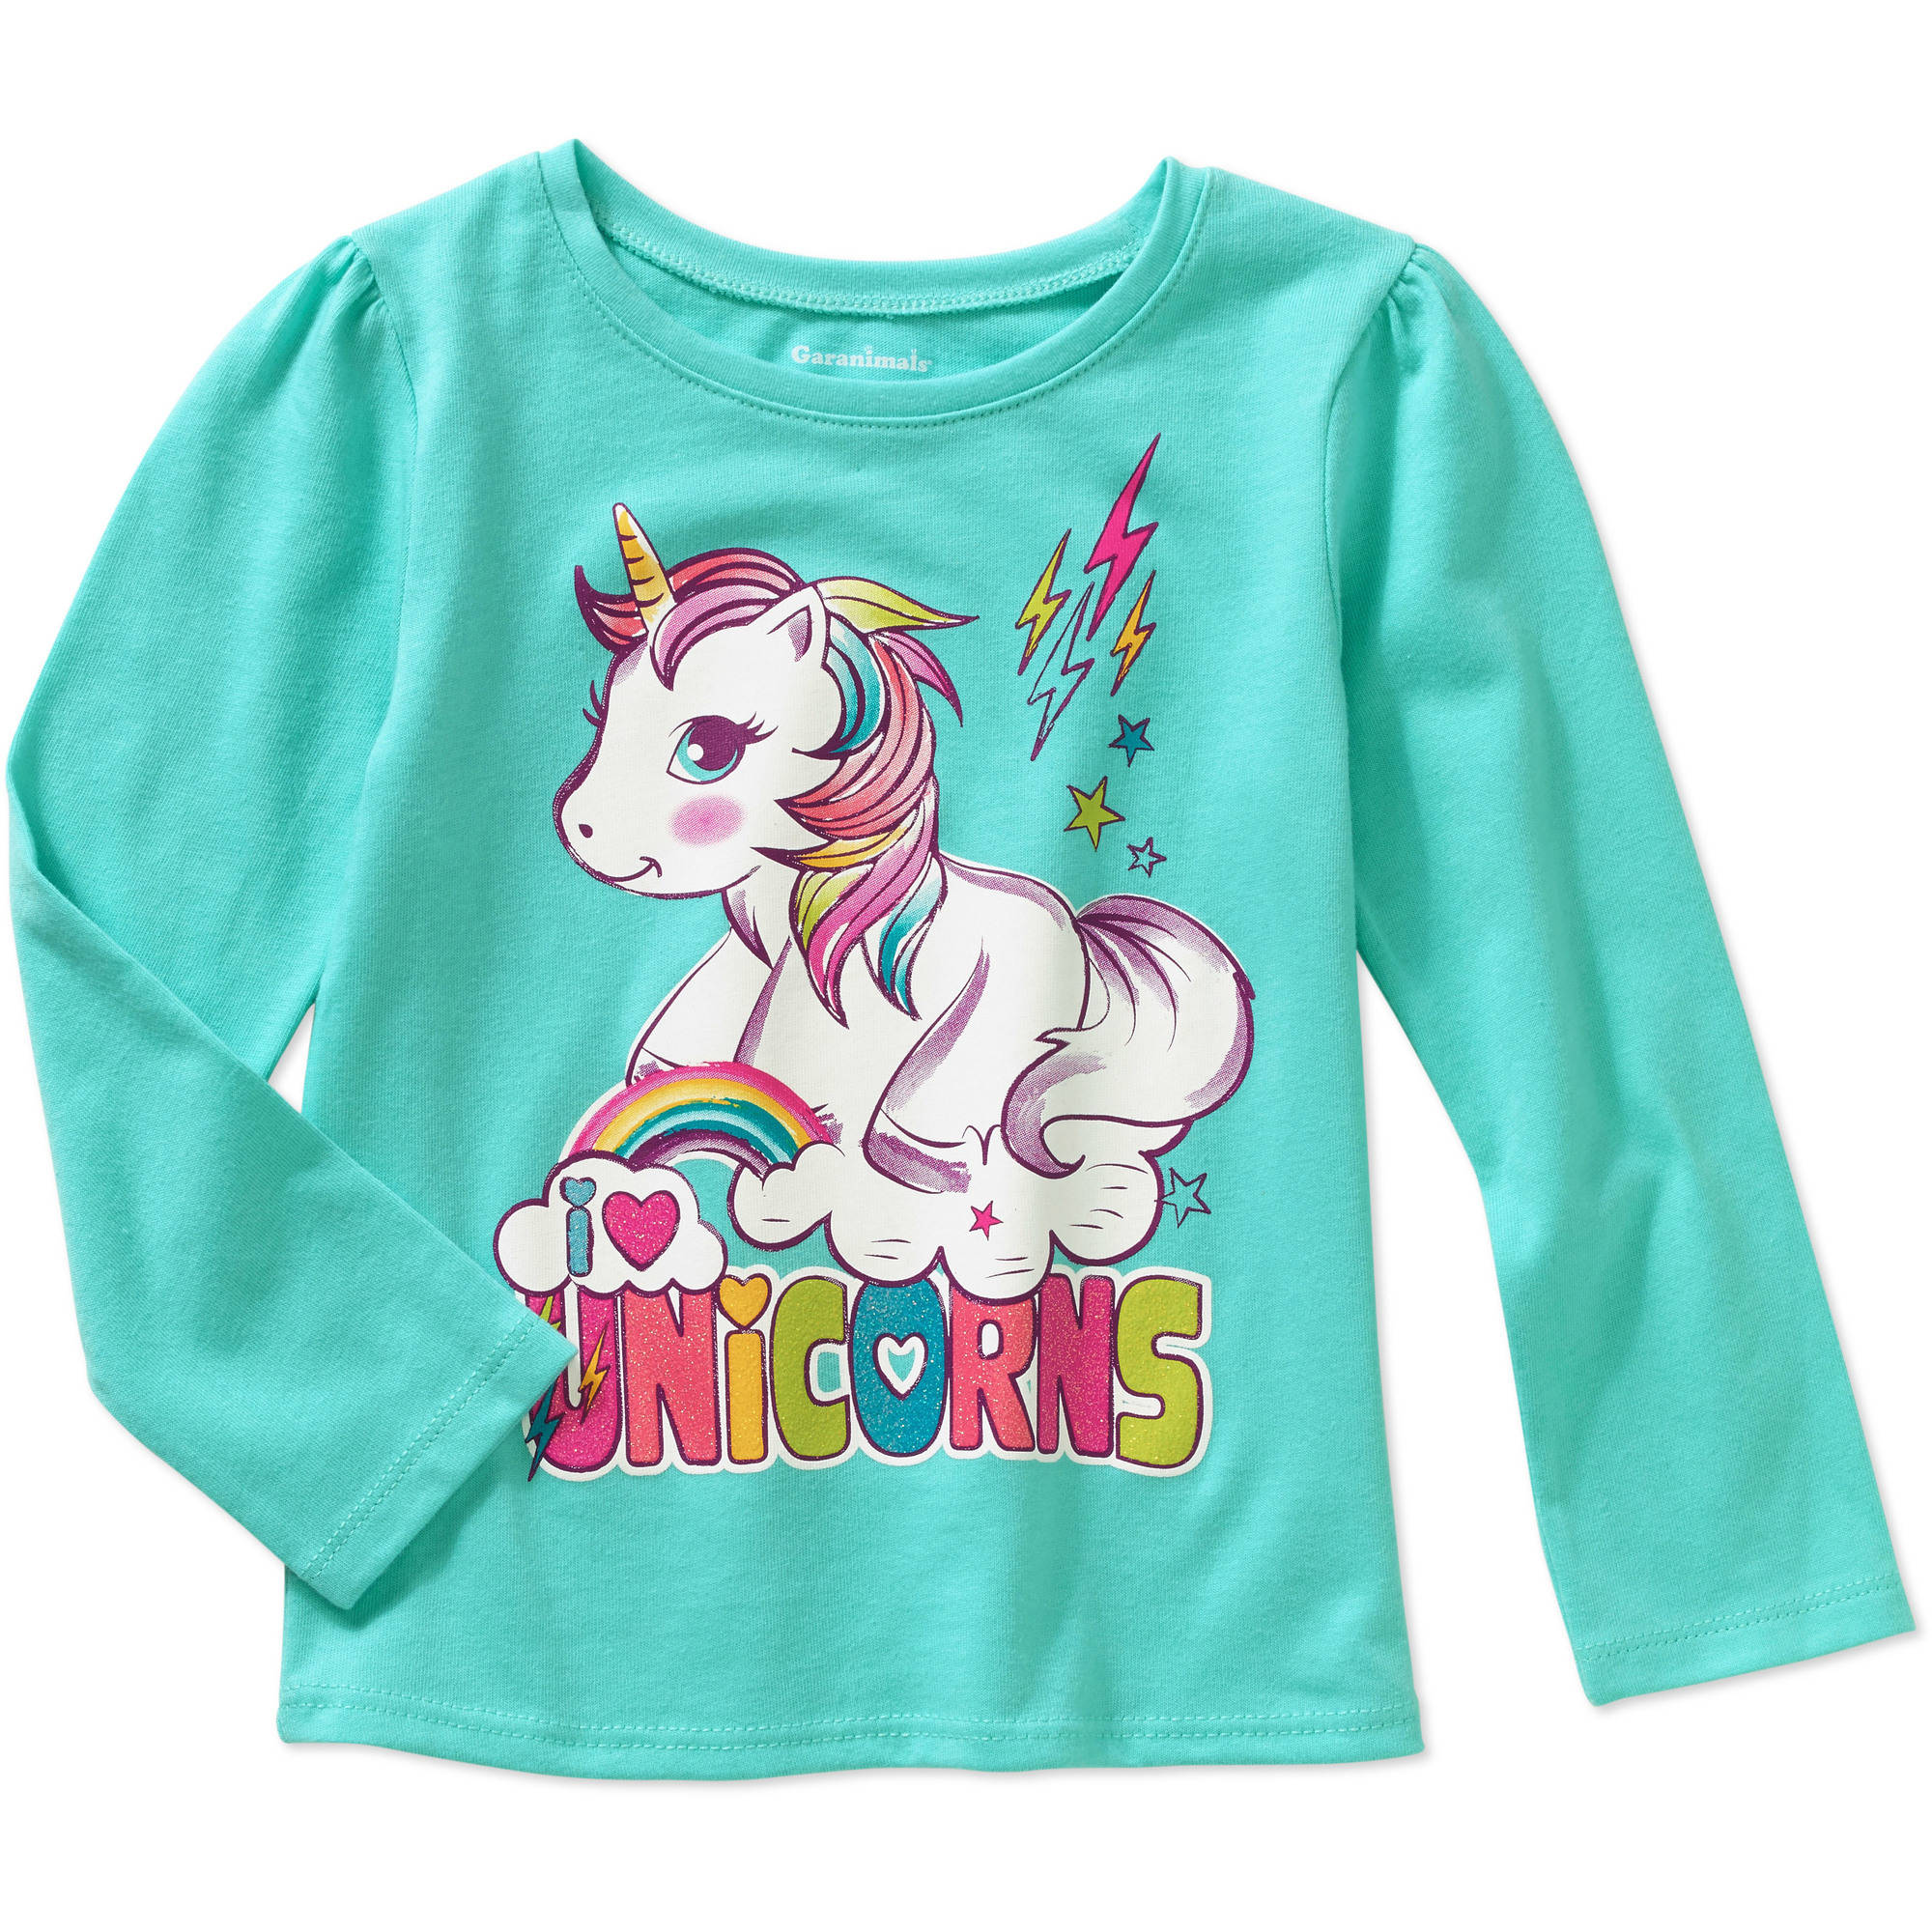 Garanimals Baby Toddler Girls' Long Sleeve Graphic Tee